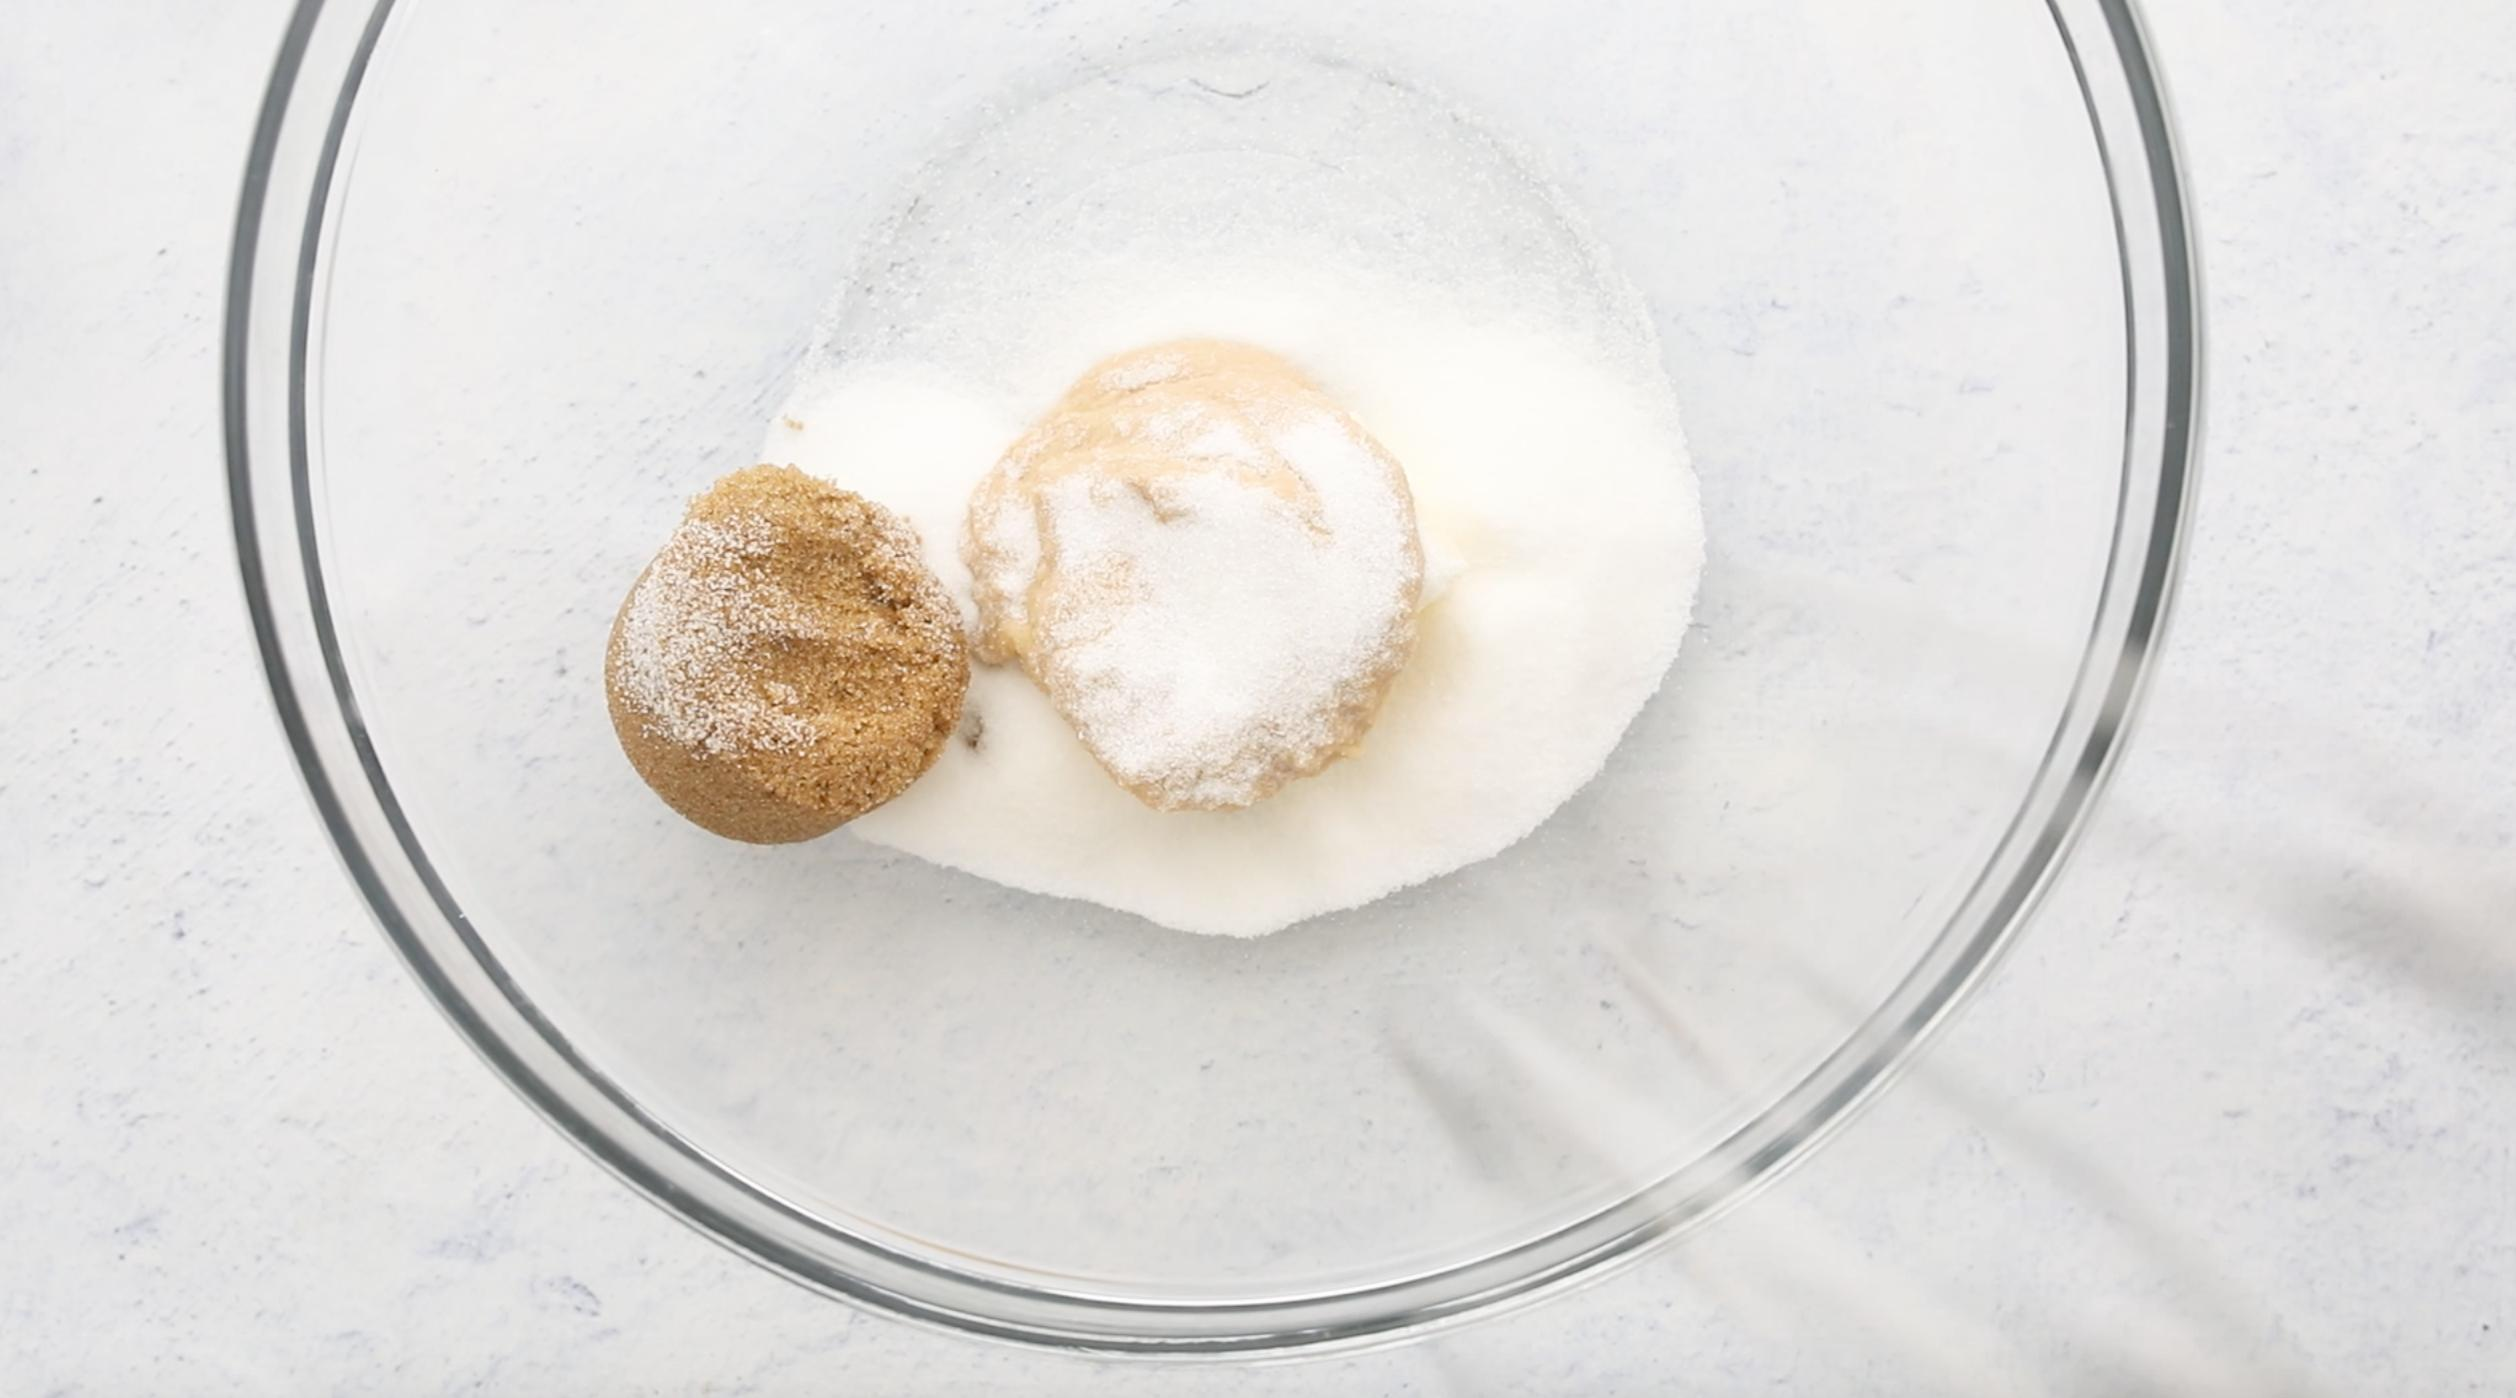 sugars and butter in a large glass bowl